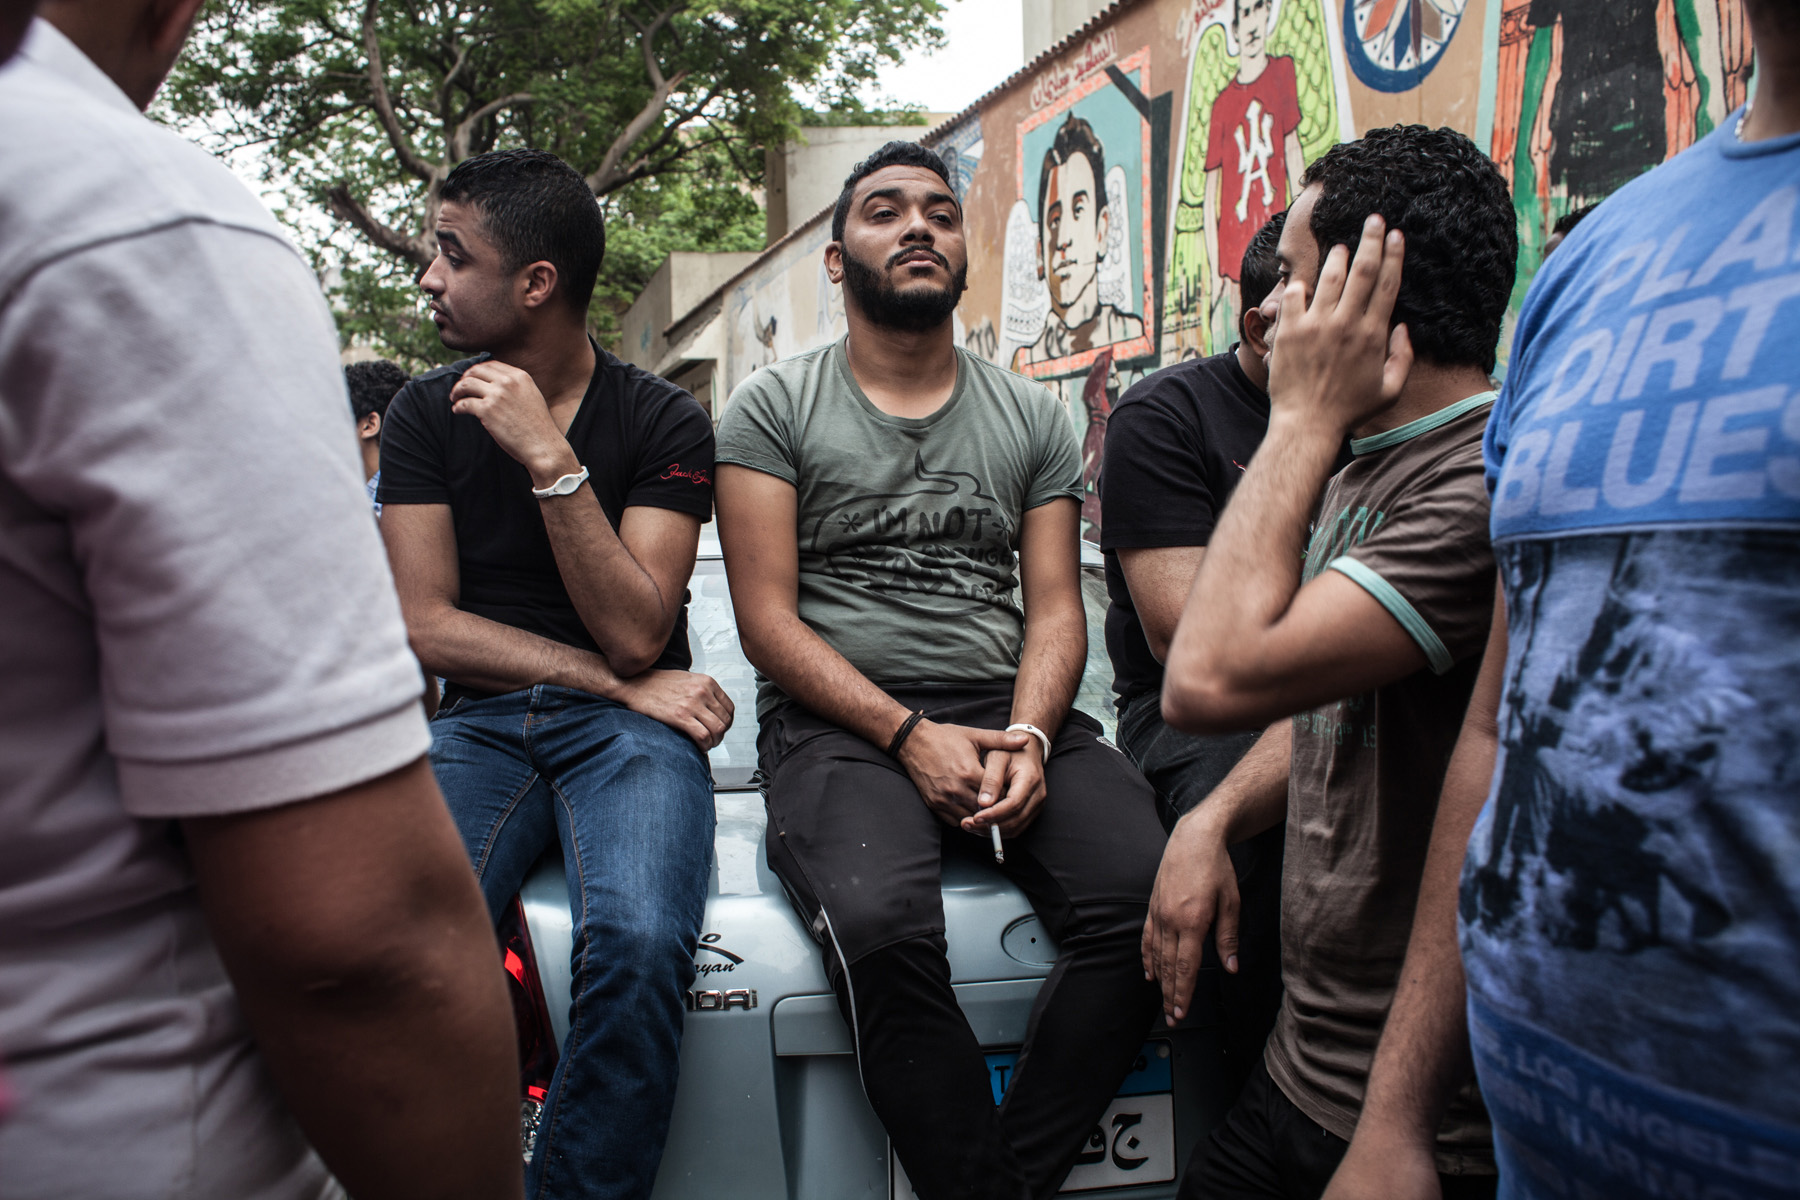 Tika, founding member of the Ahlawy, is sitting on a car close to Tahrir Square in the famous Mohammed Mahmoud street in Cairo while being surrounded by other members of the Ahlawy